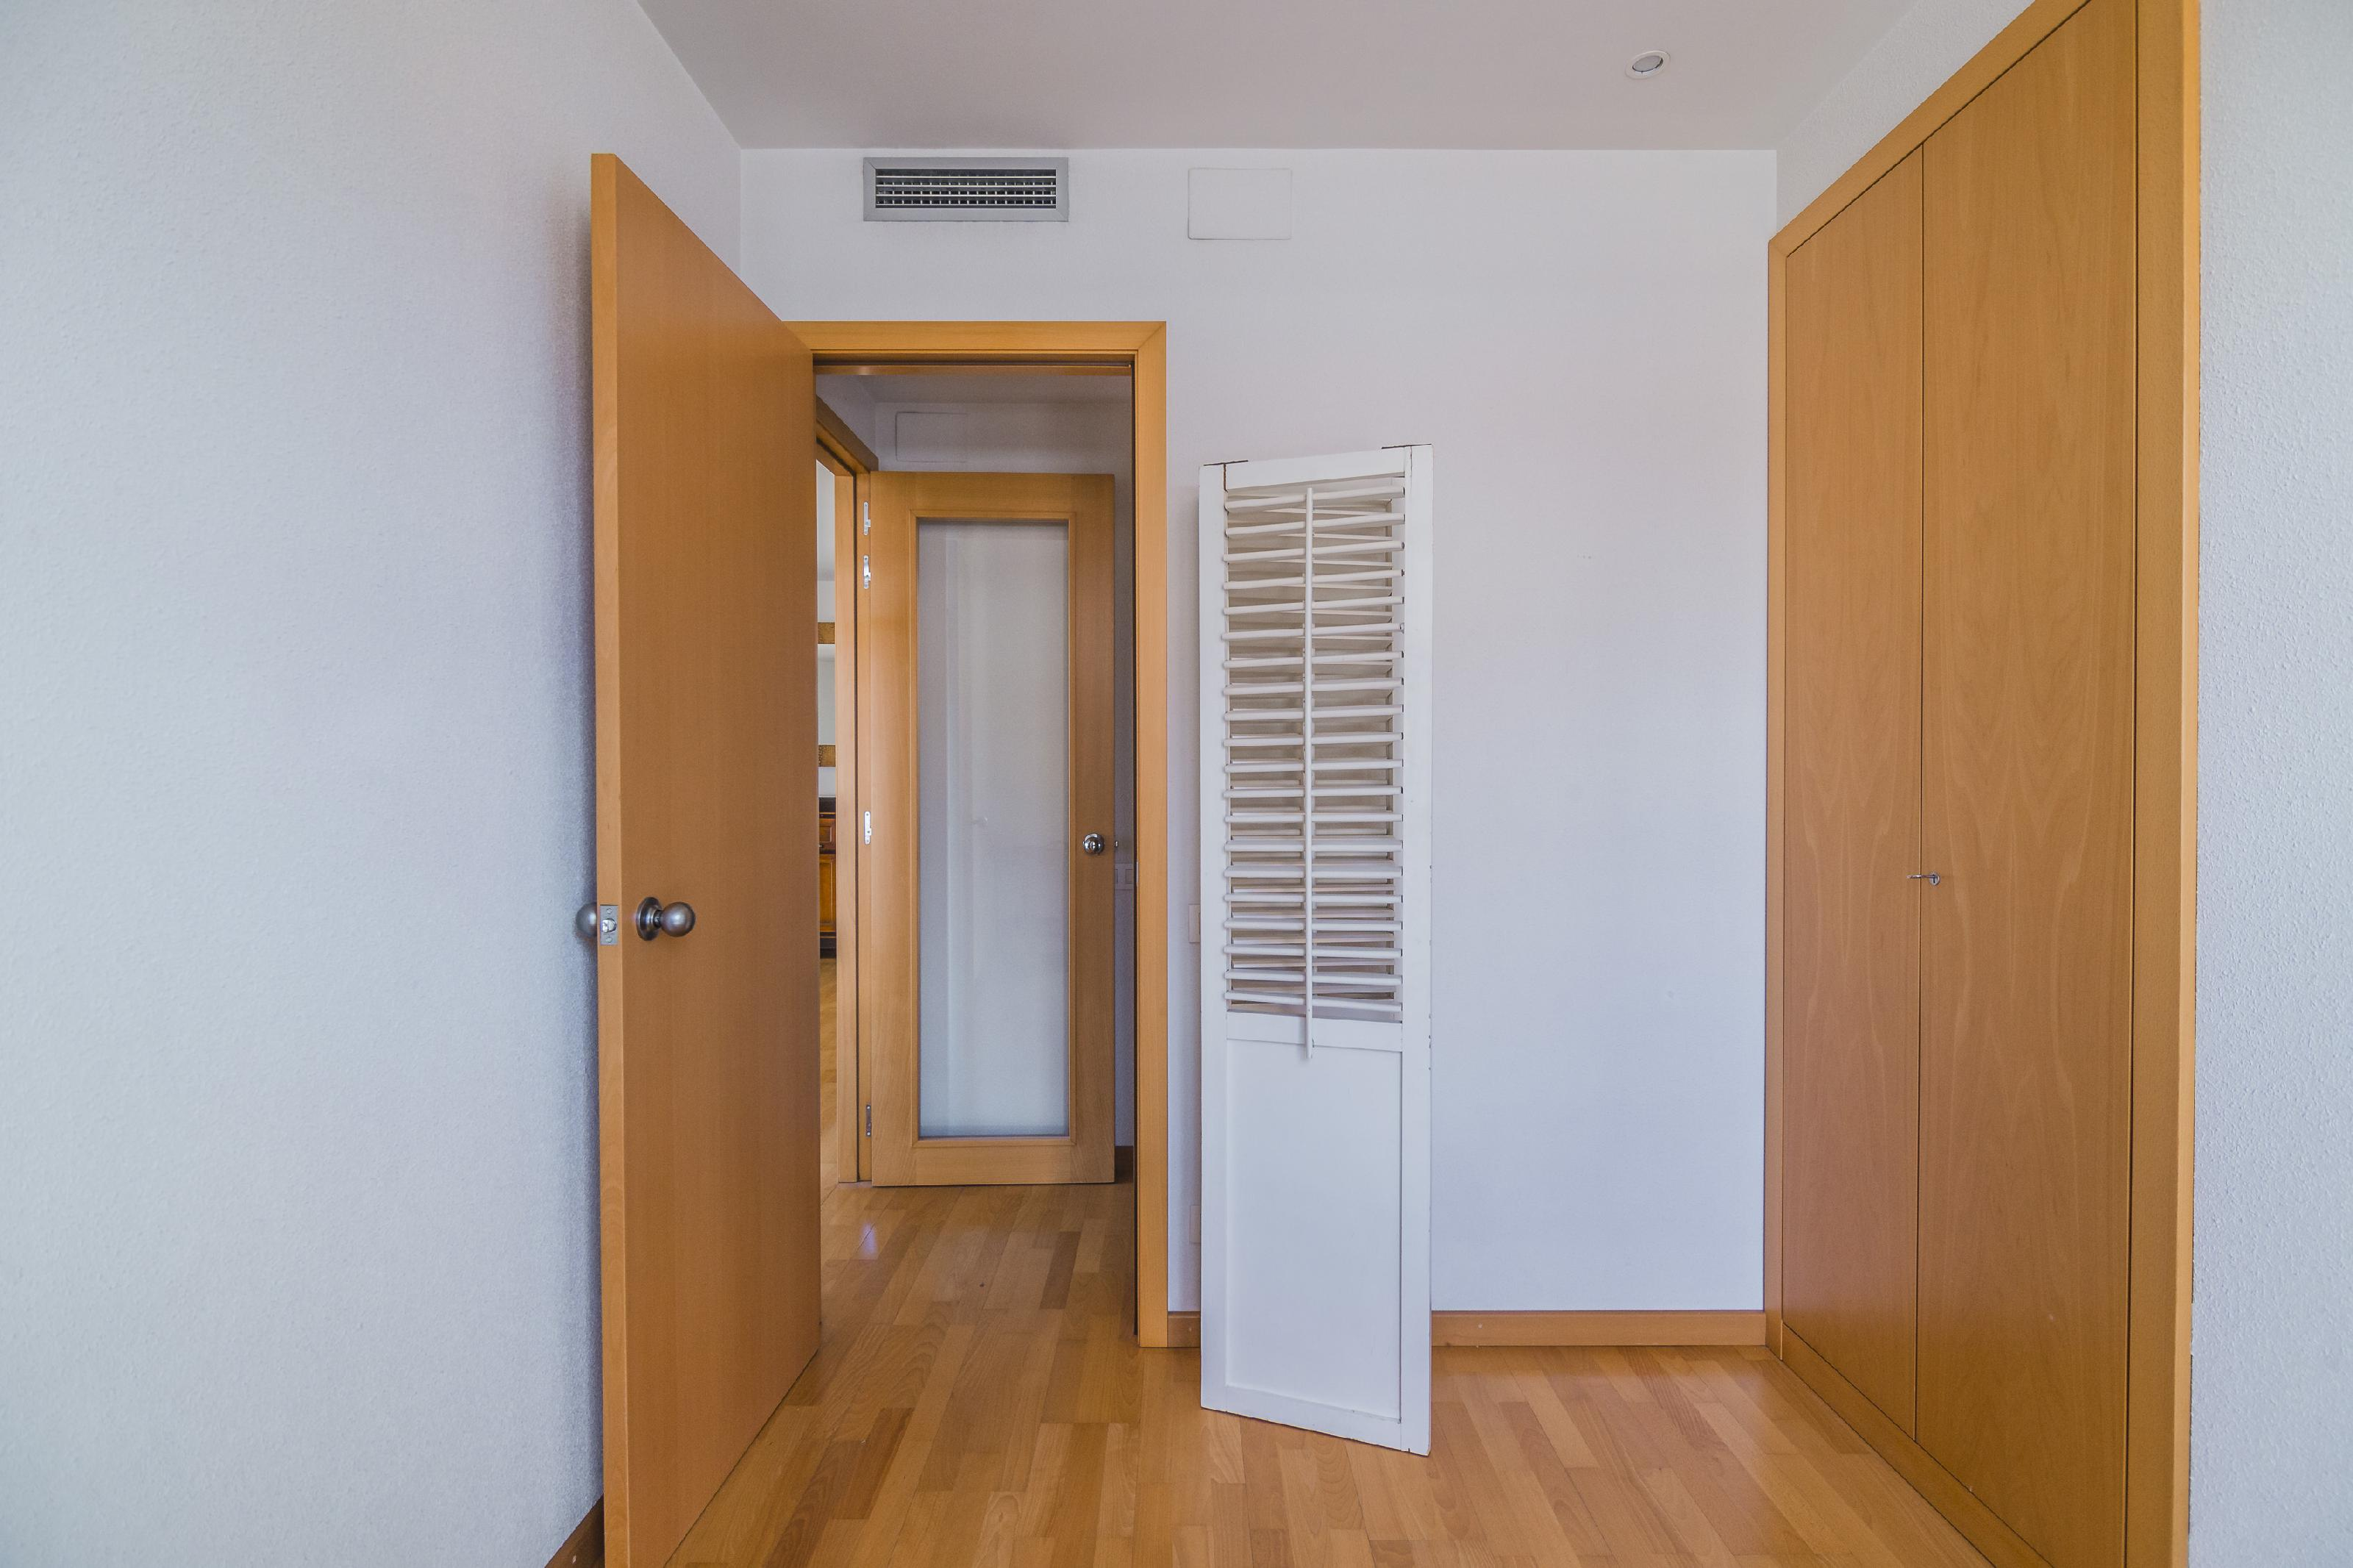 230834 Penthouse for sale in Horta-Guinardó, El Guinardó 19